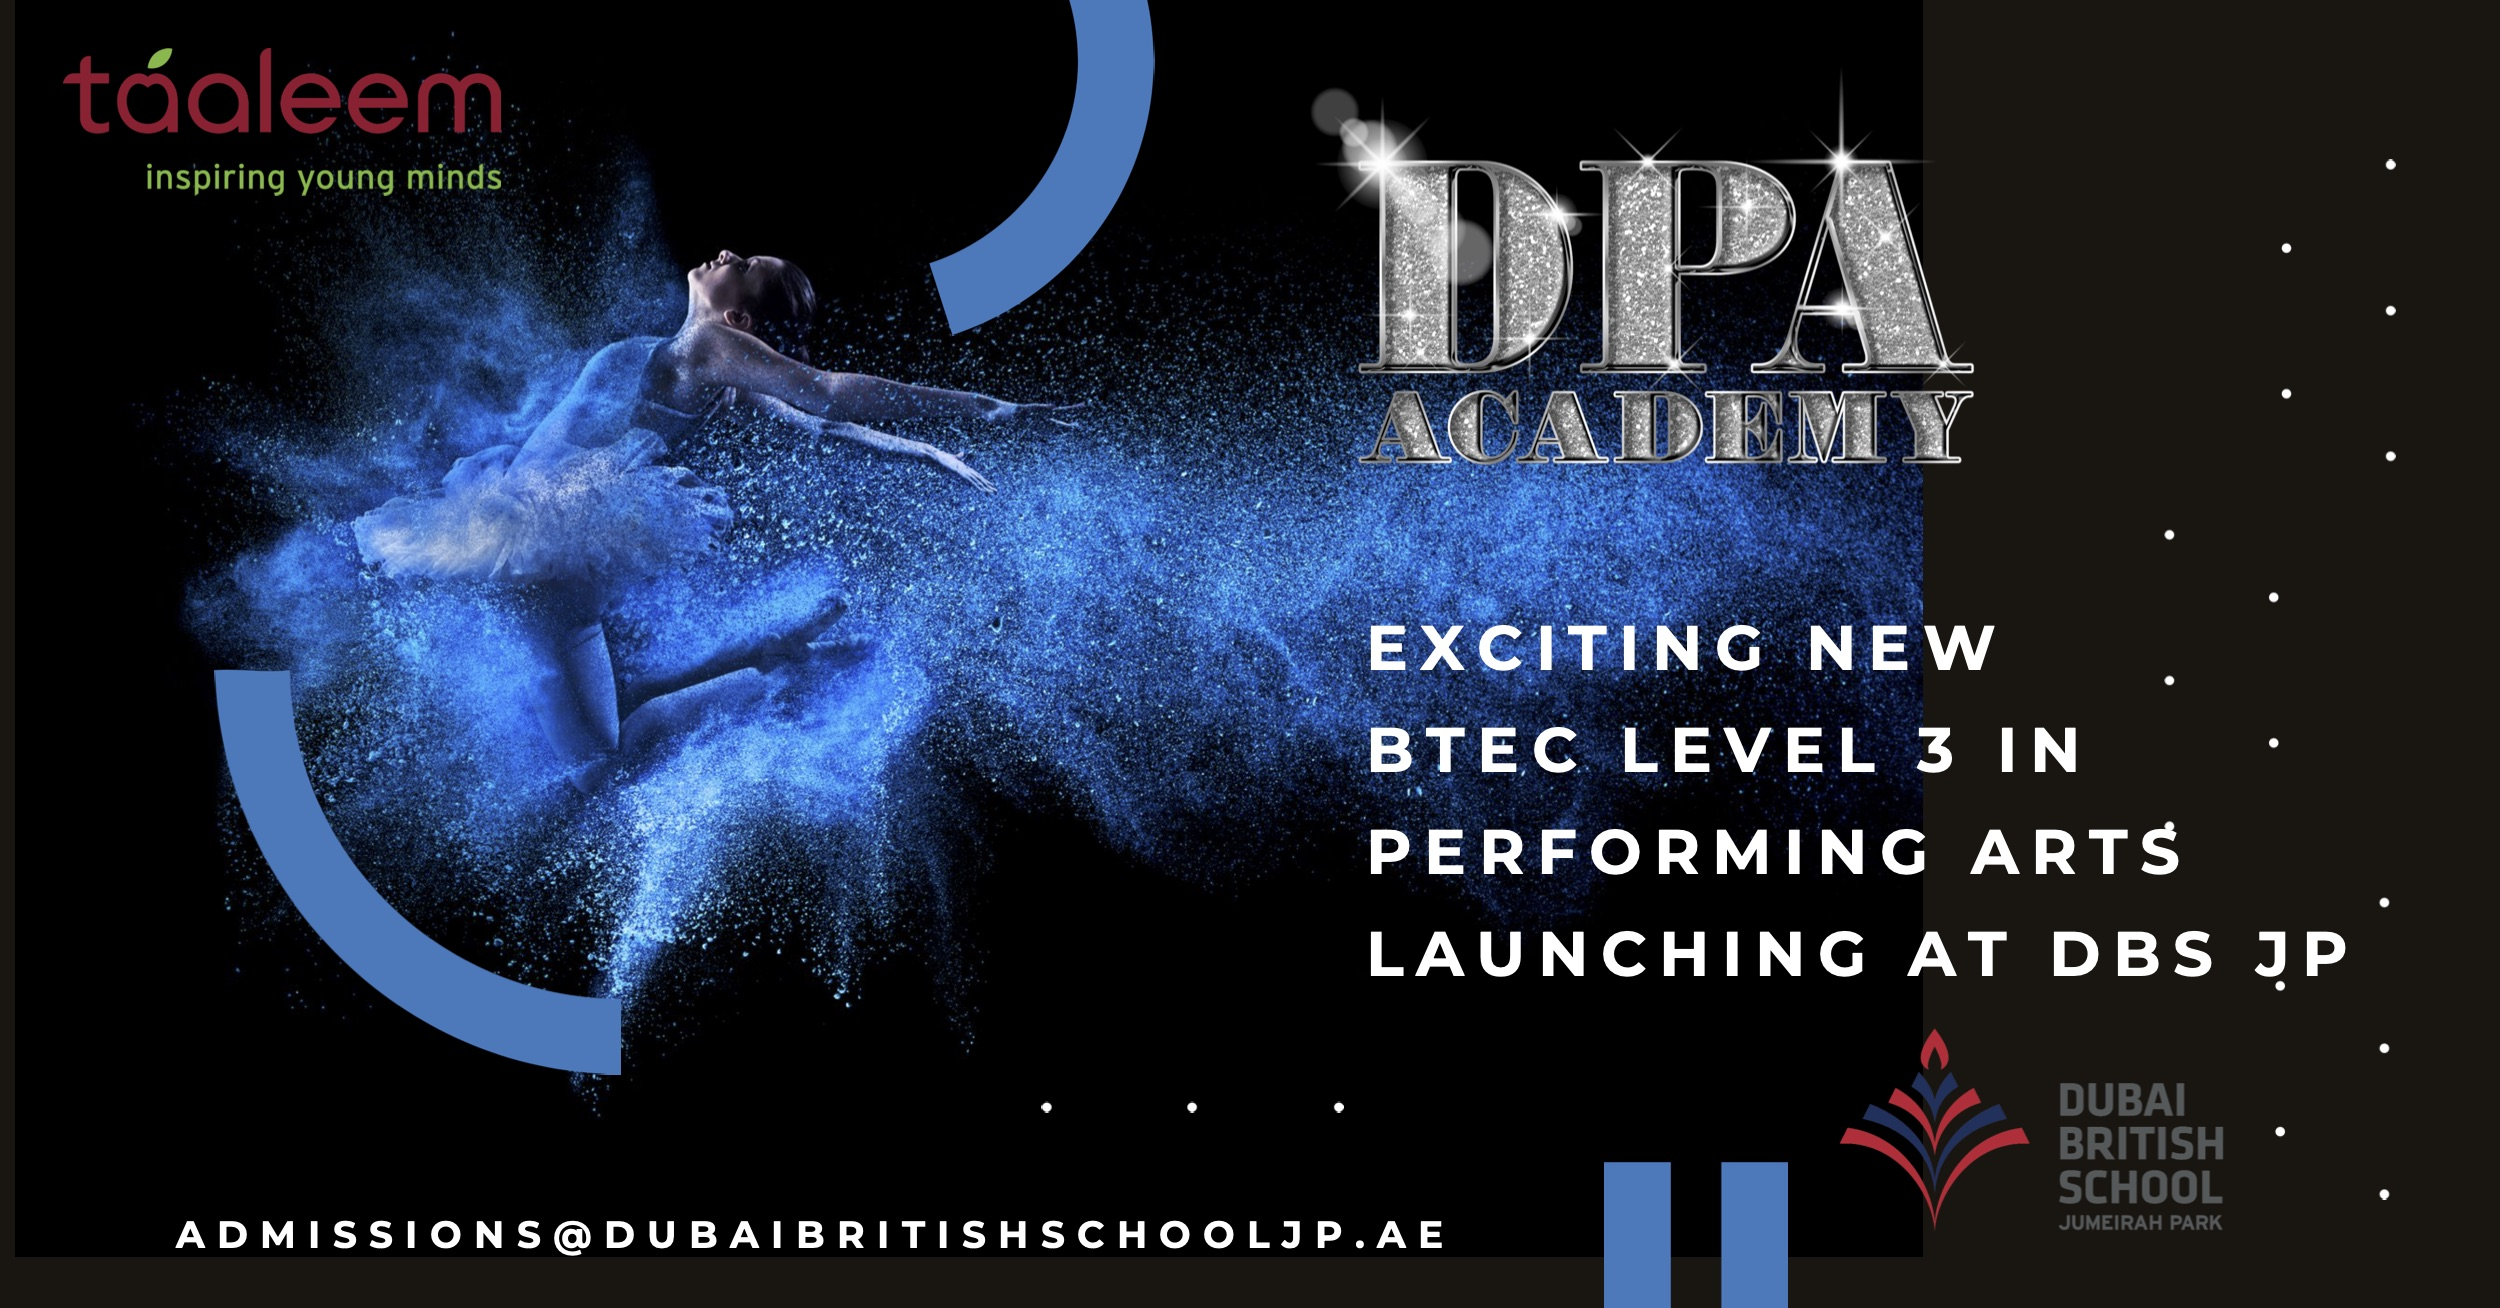 DPA LAUNCHES THE FIRST BTEC IN PERFORMING ARTS WITH TAALEEM.